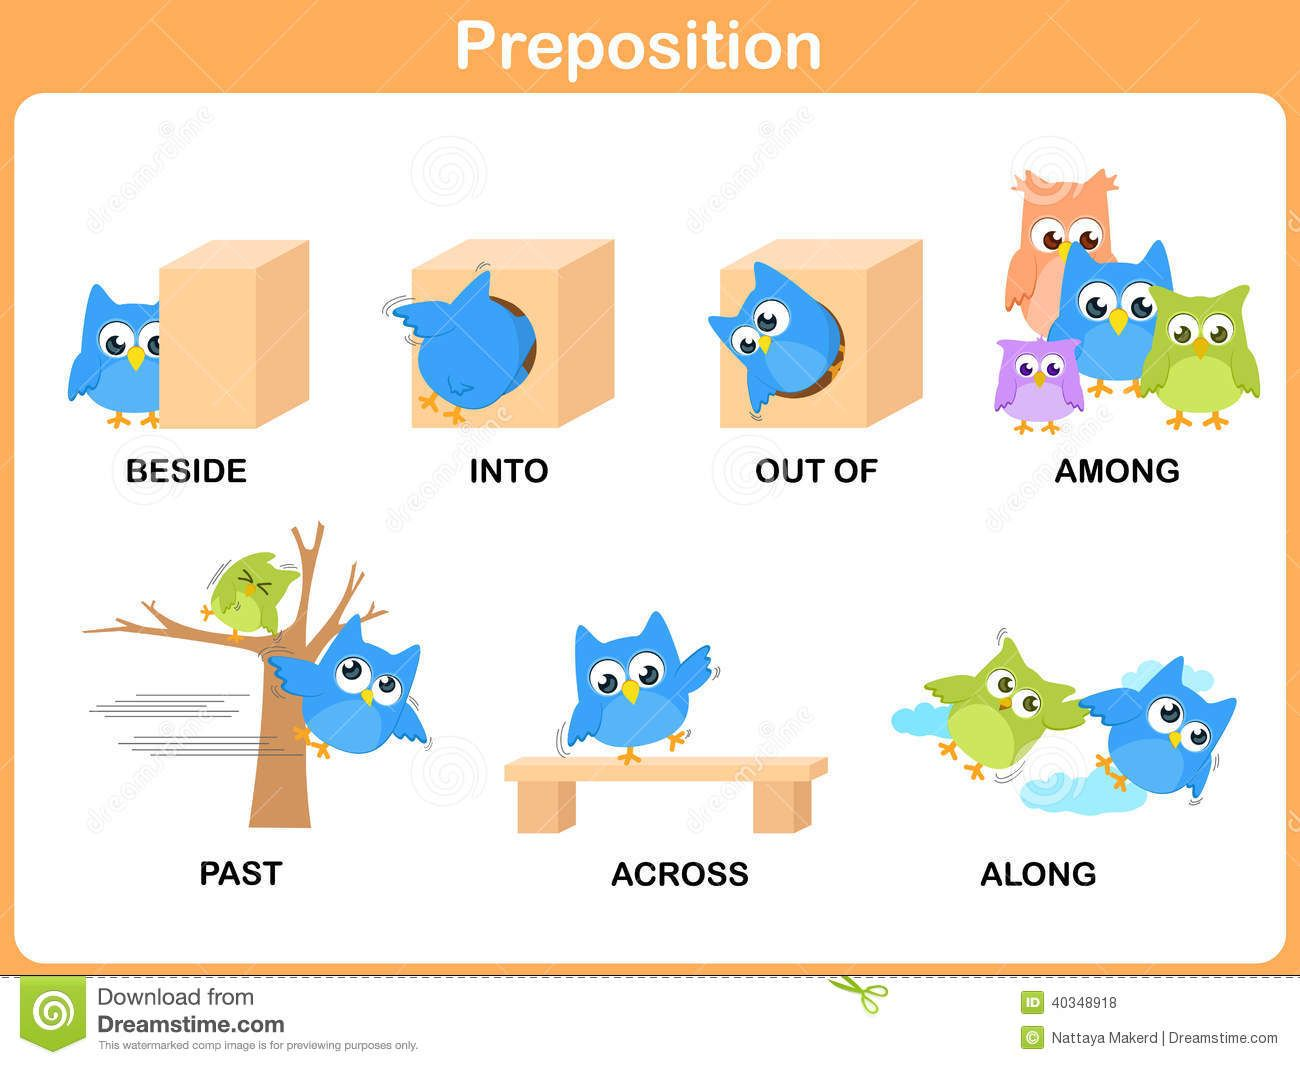 Prepositions Beside Into Out Of Among